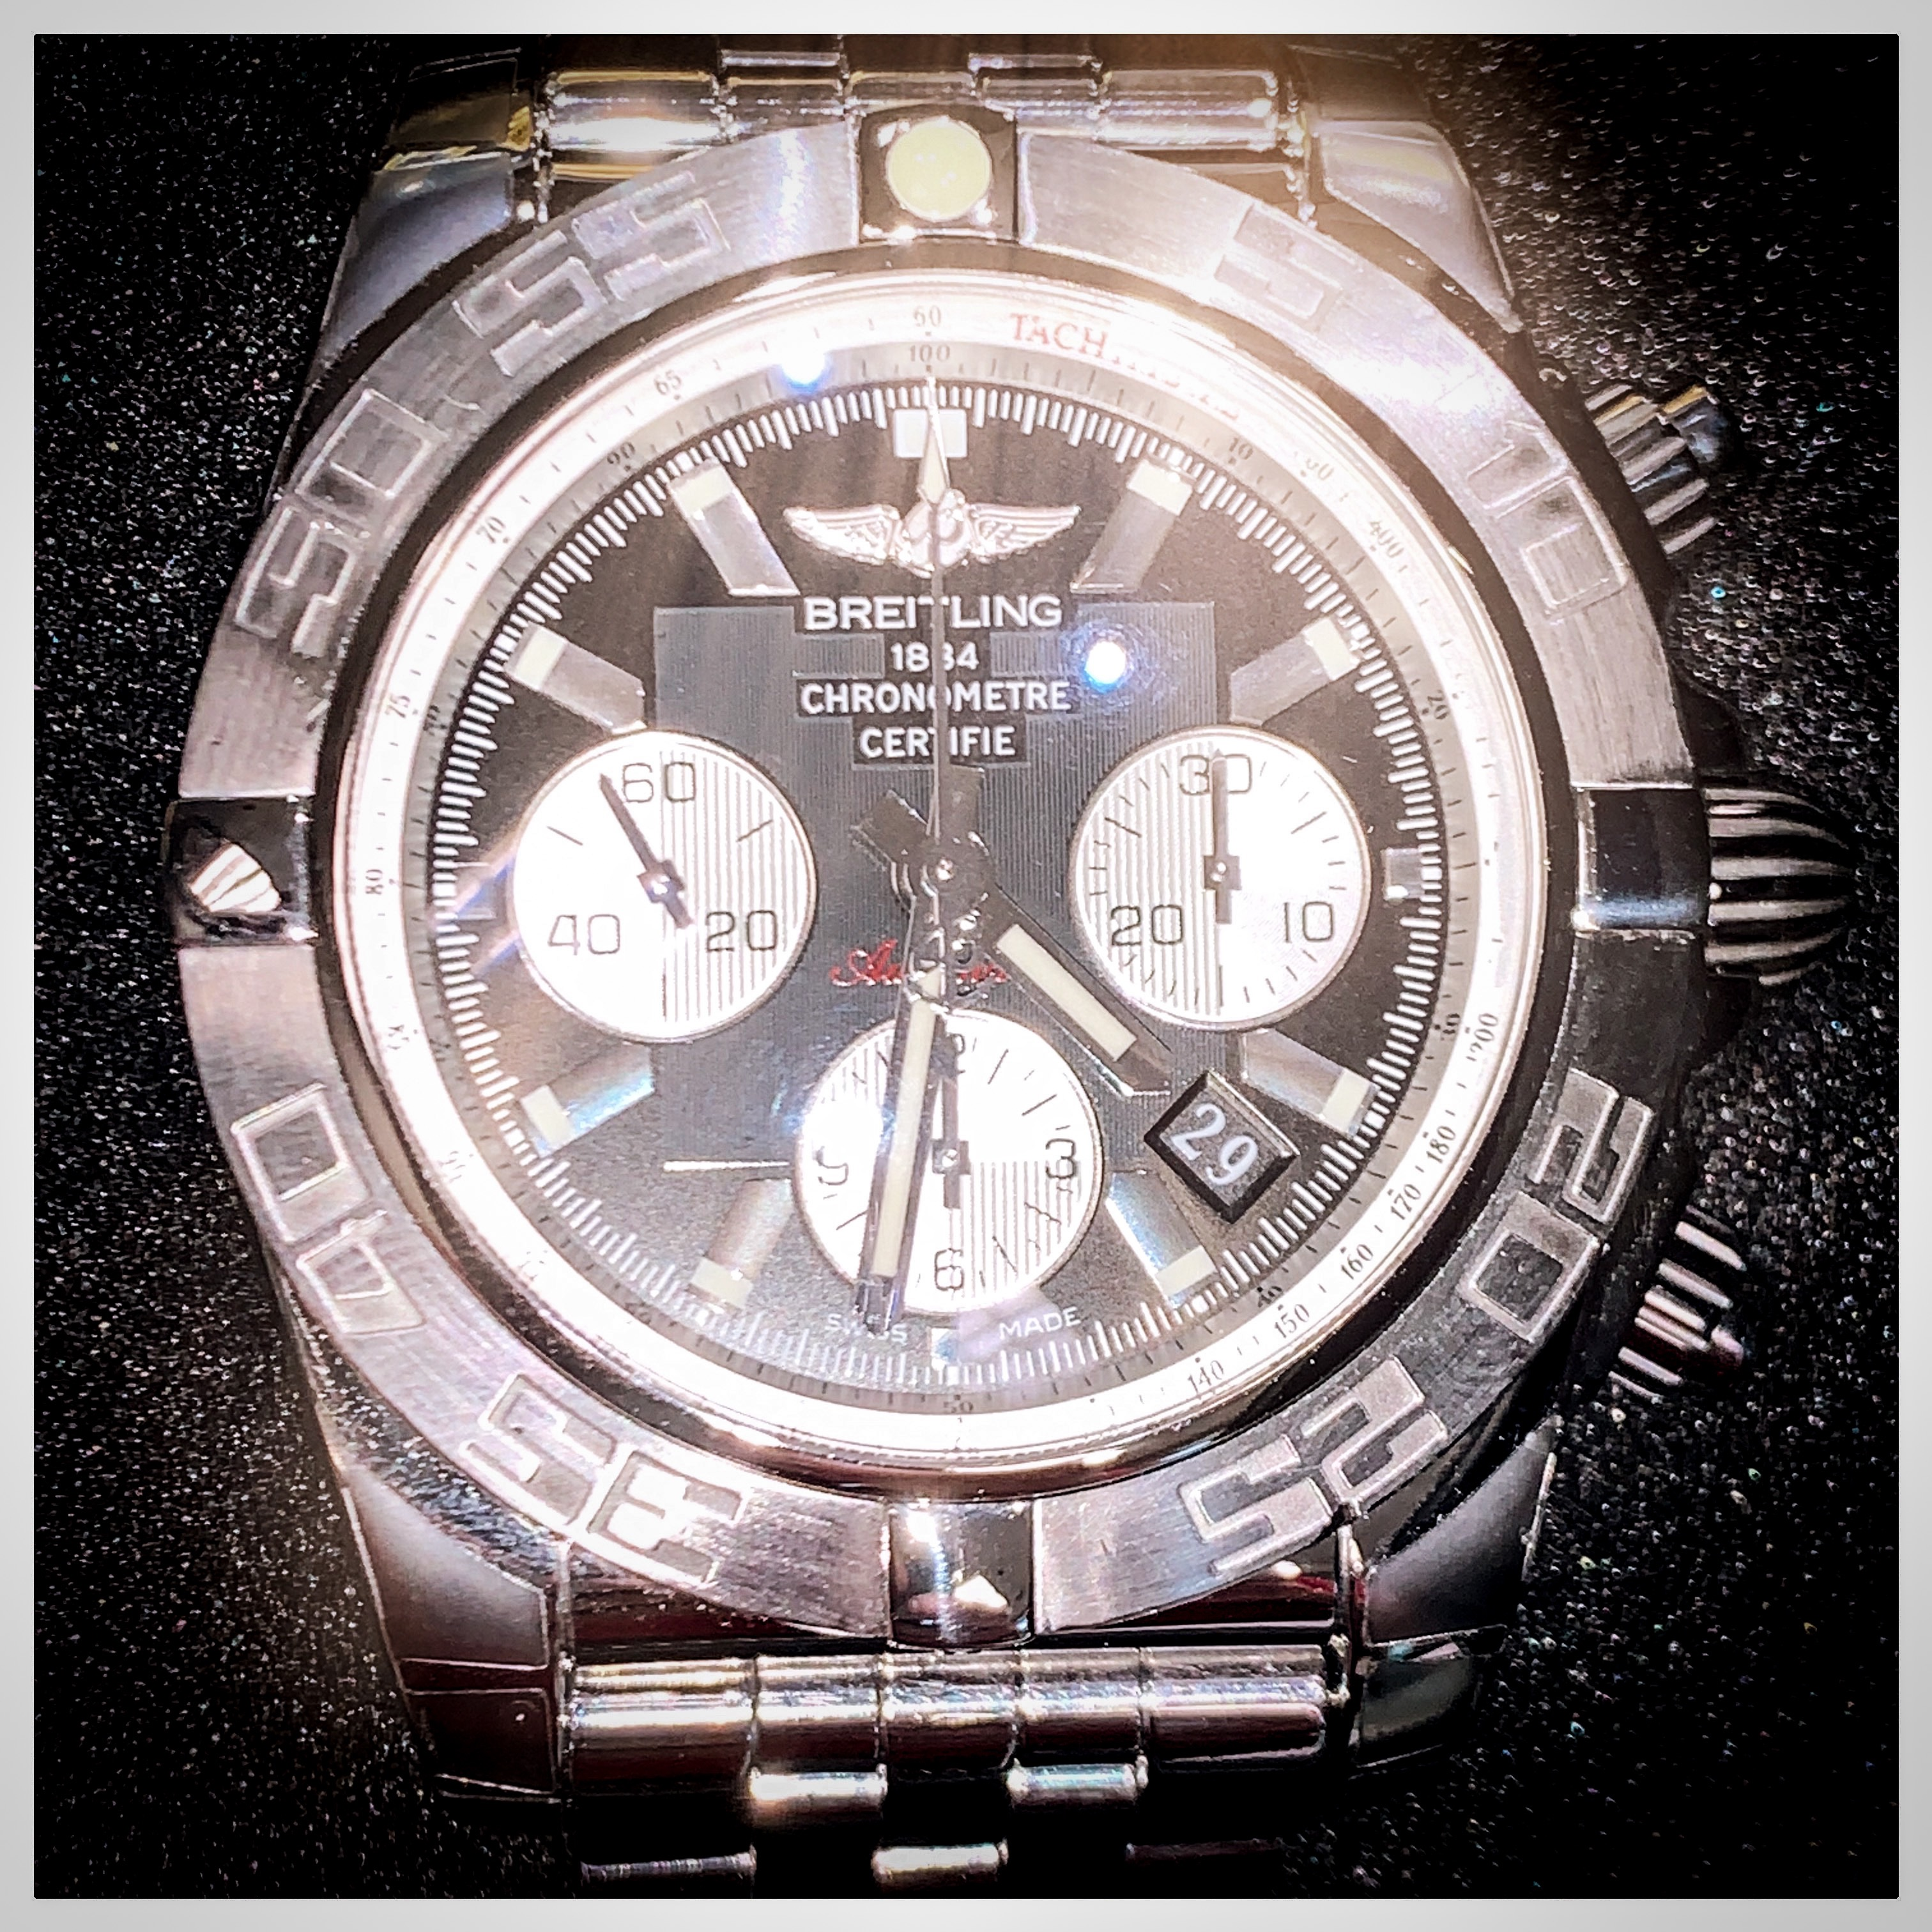 Repaired Breitling